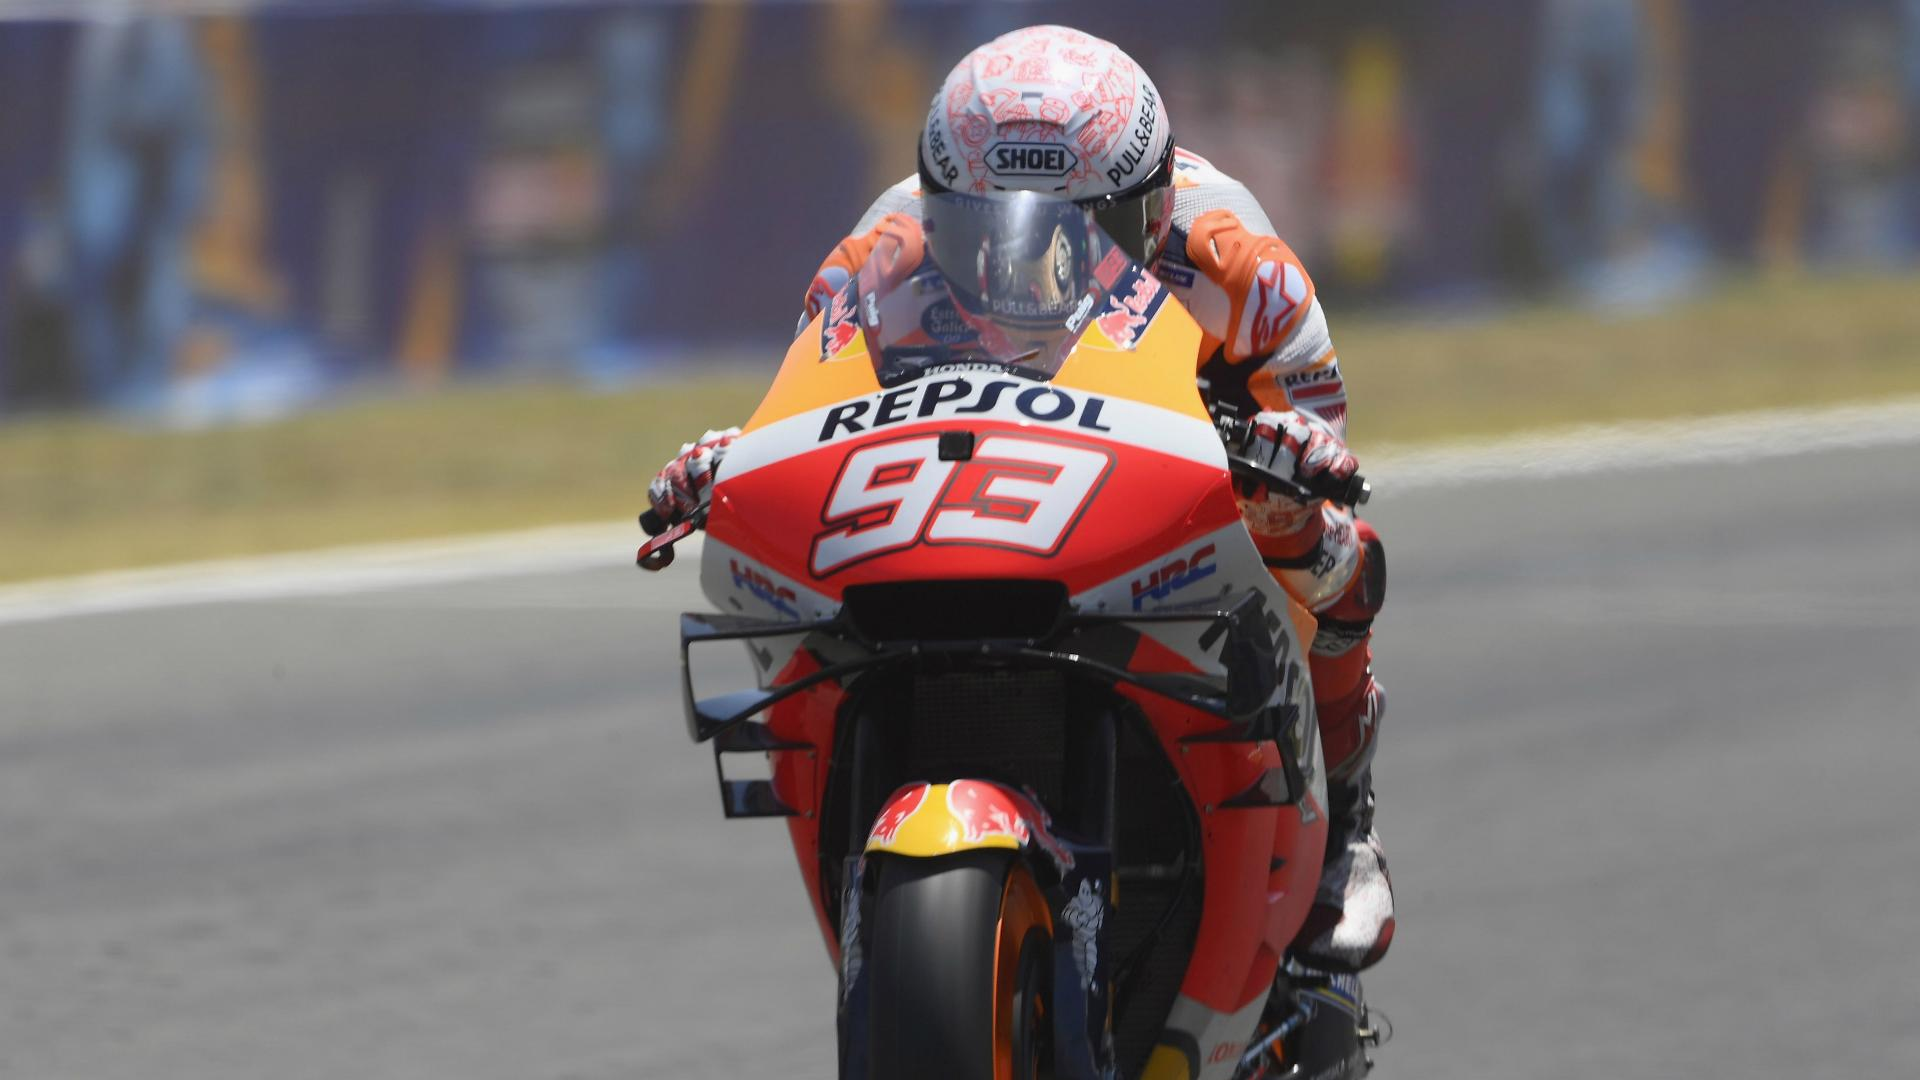 Marquez broke arm plate opening window at home